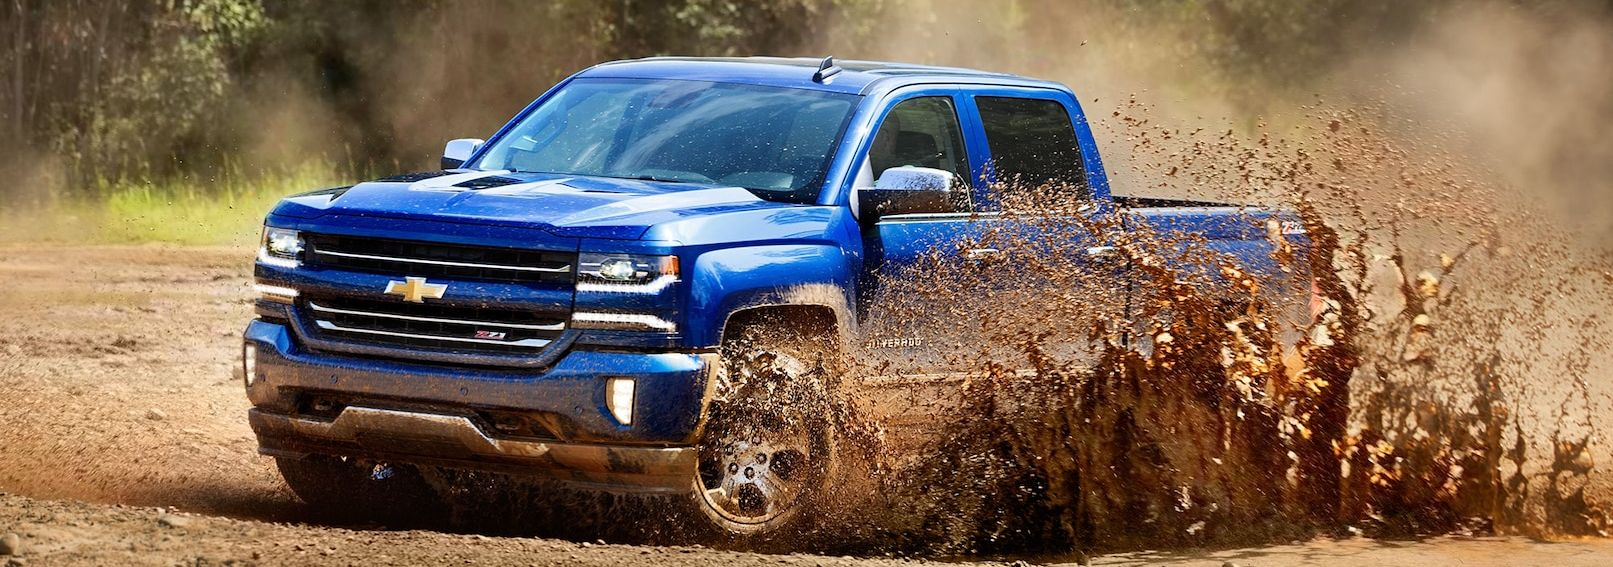 Used Chevrolet Vehicles for Sale near Naperville, IL